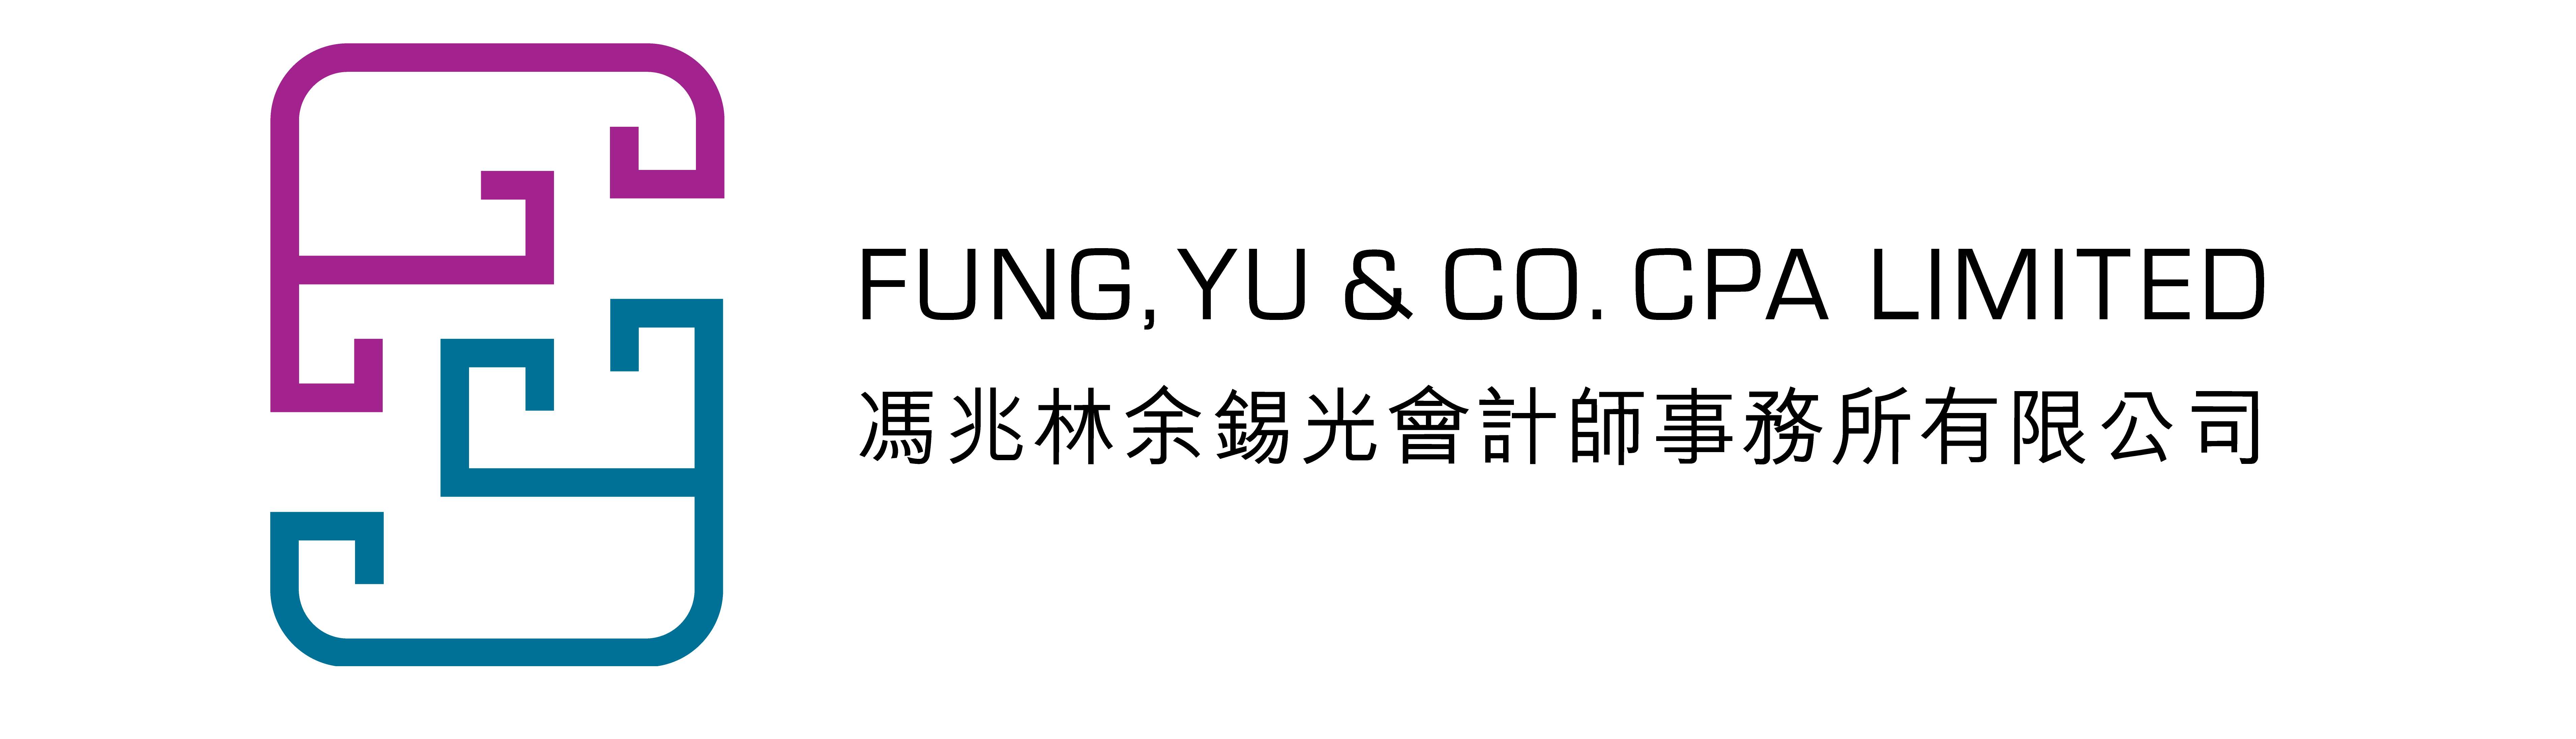 Fung, Yu & Co. CPA Limited